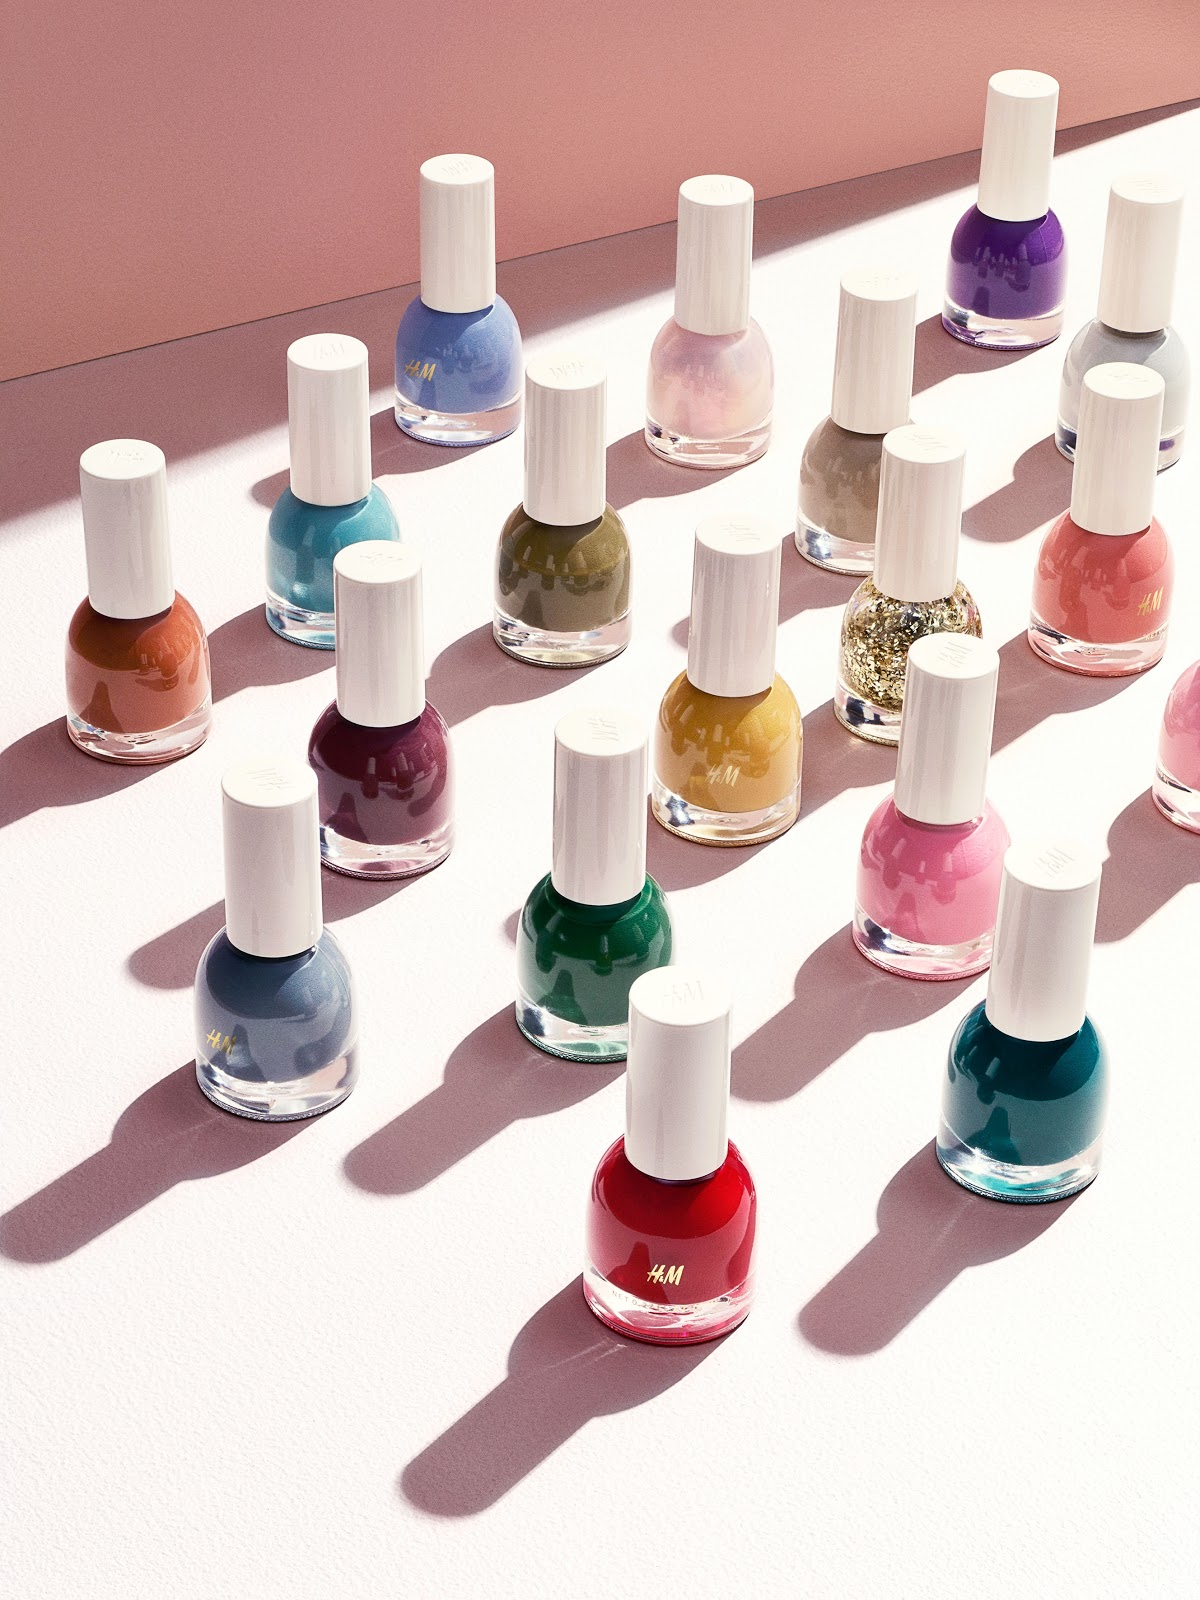 H&M beauty range launch autumn 2015 nail polishes